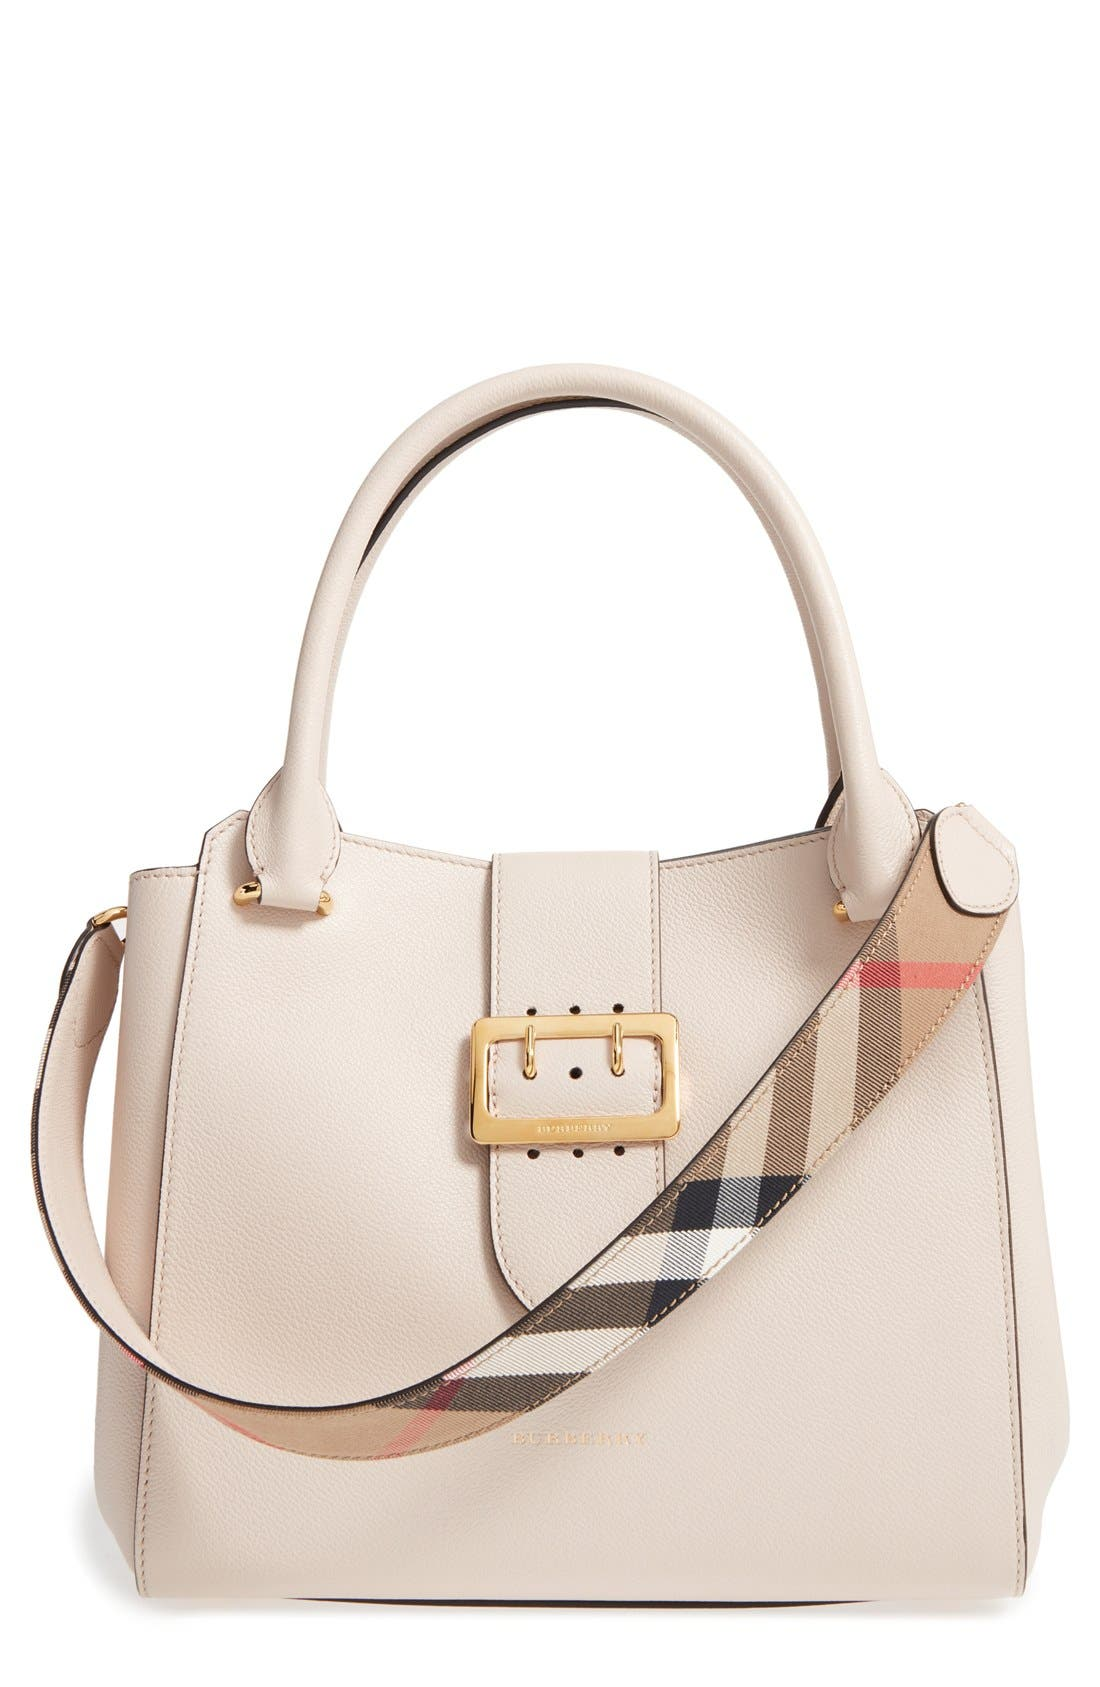 Alternate Image 1 Selected - Burberry Medium Buckle Leather Satchel